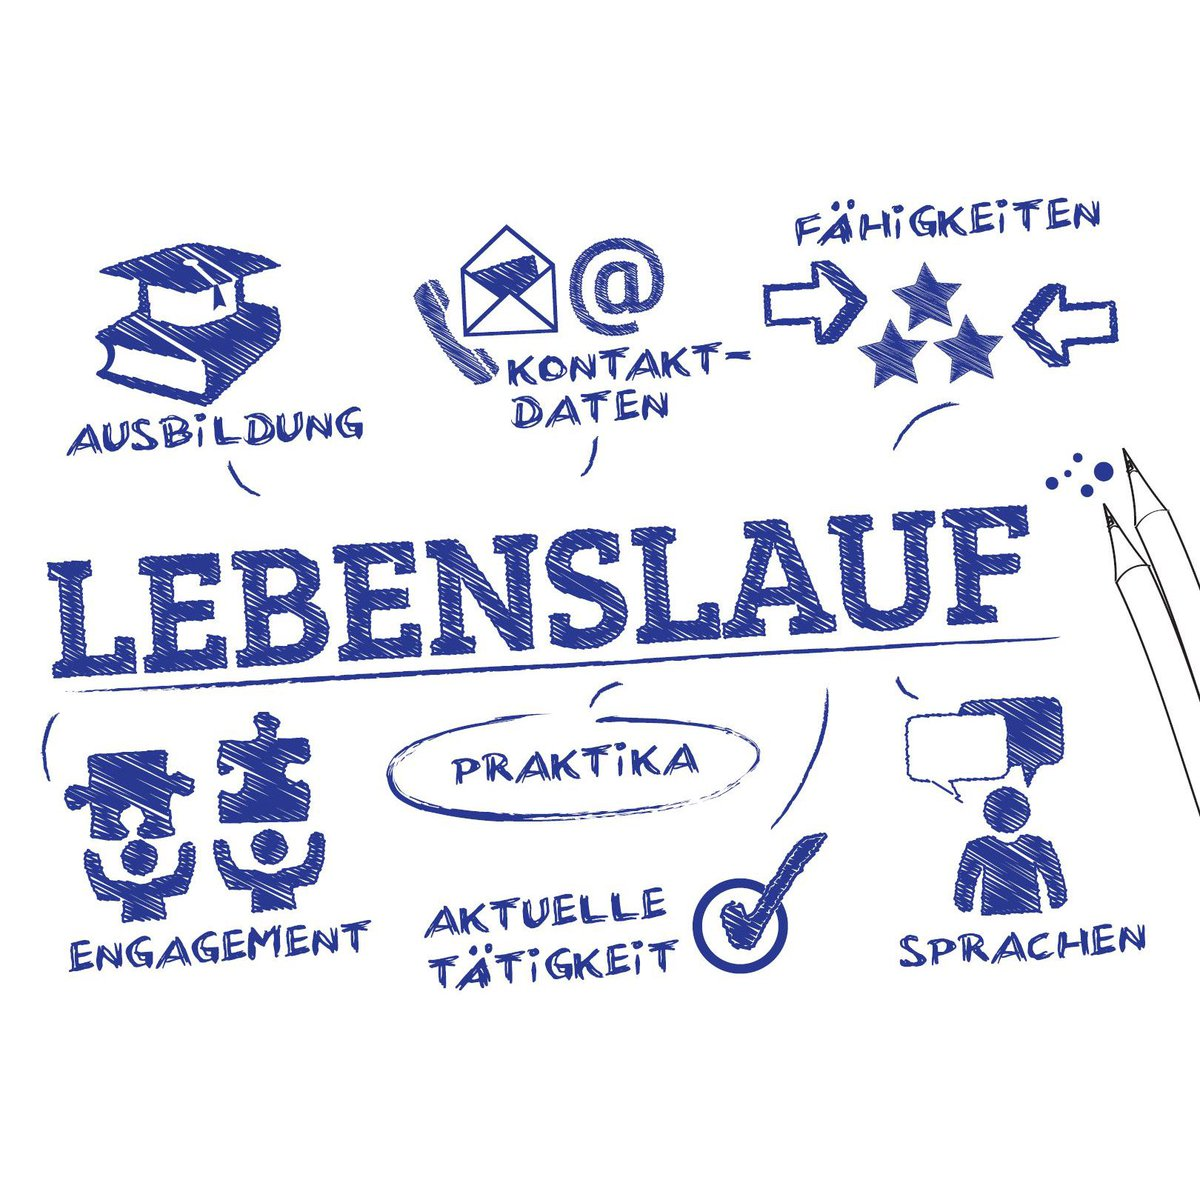 lebenslauf hashtag on Twitter